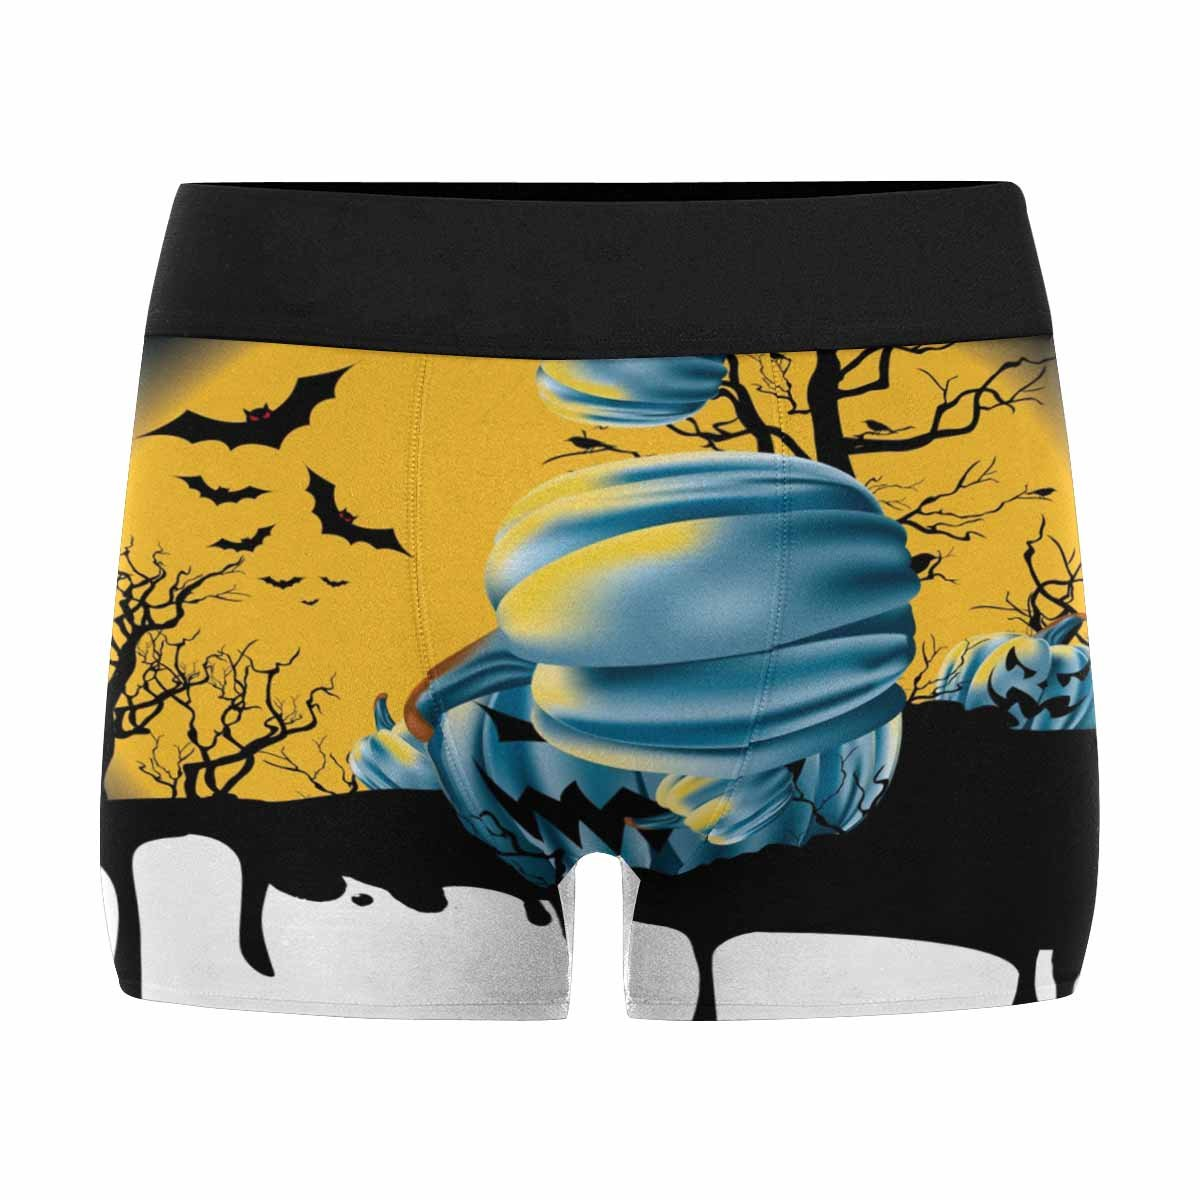 INTERESTPRINT Custom Mens All-Over Print Boxer Briefs Halloween with Full Moon Rising Over Desolate Pumpkin Patch XS-3XL